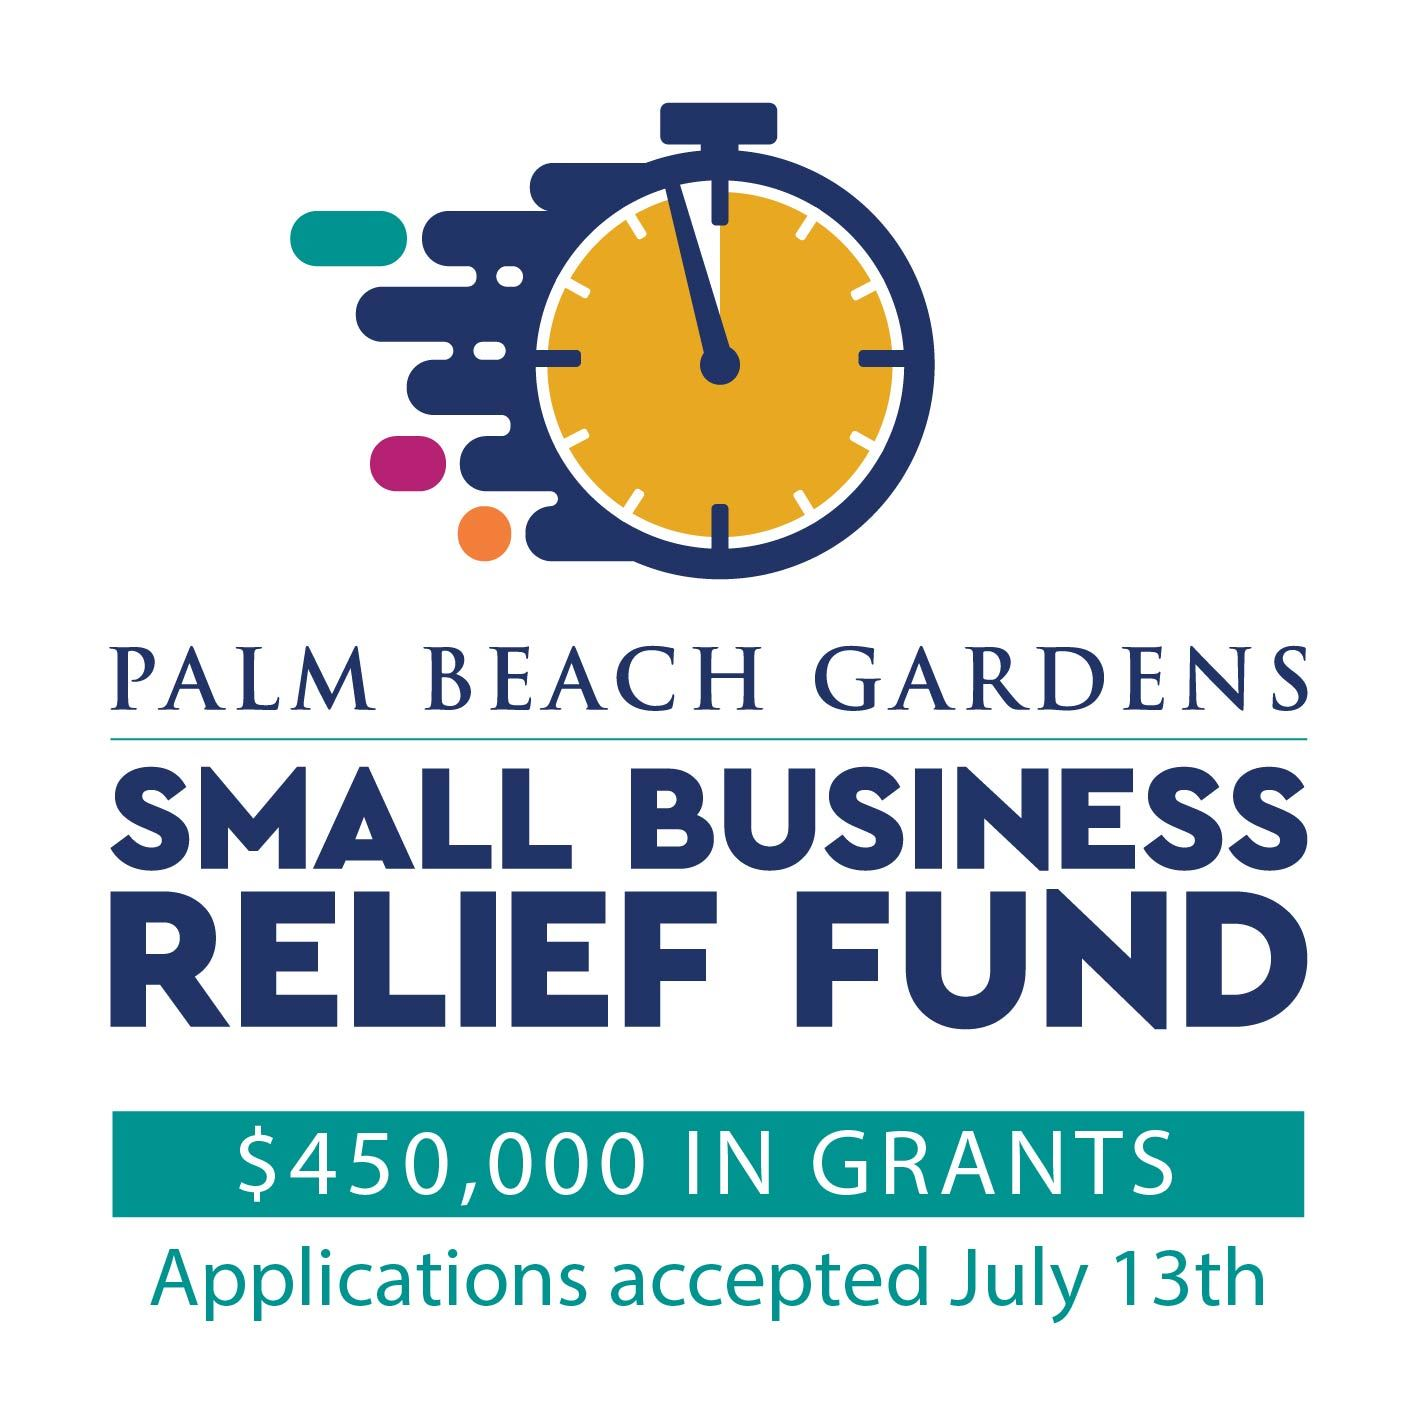 Small Business Relief Fund applications accepted July 13th.